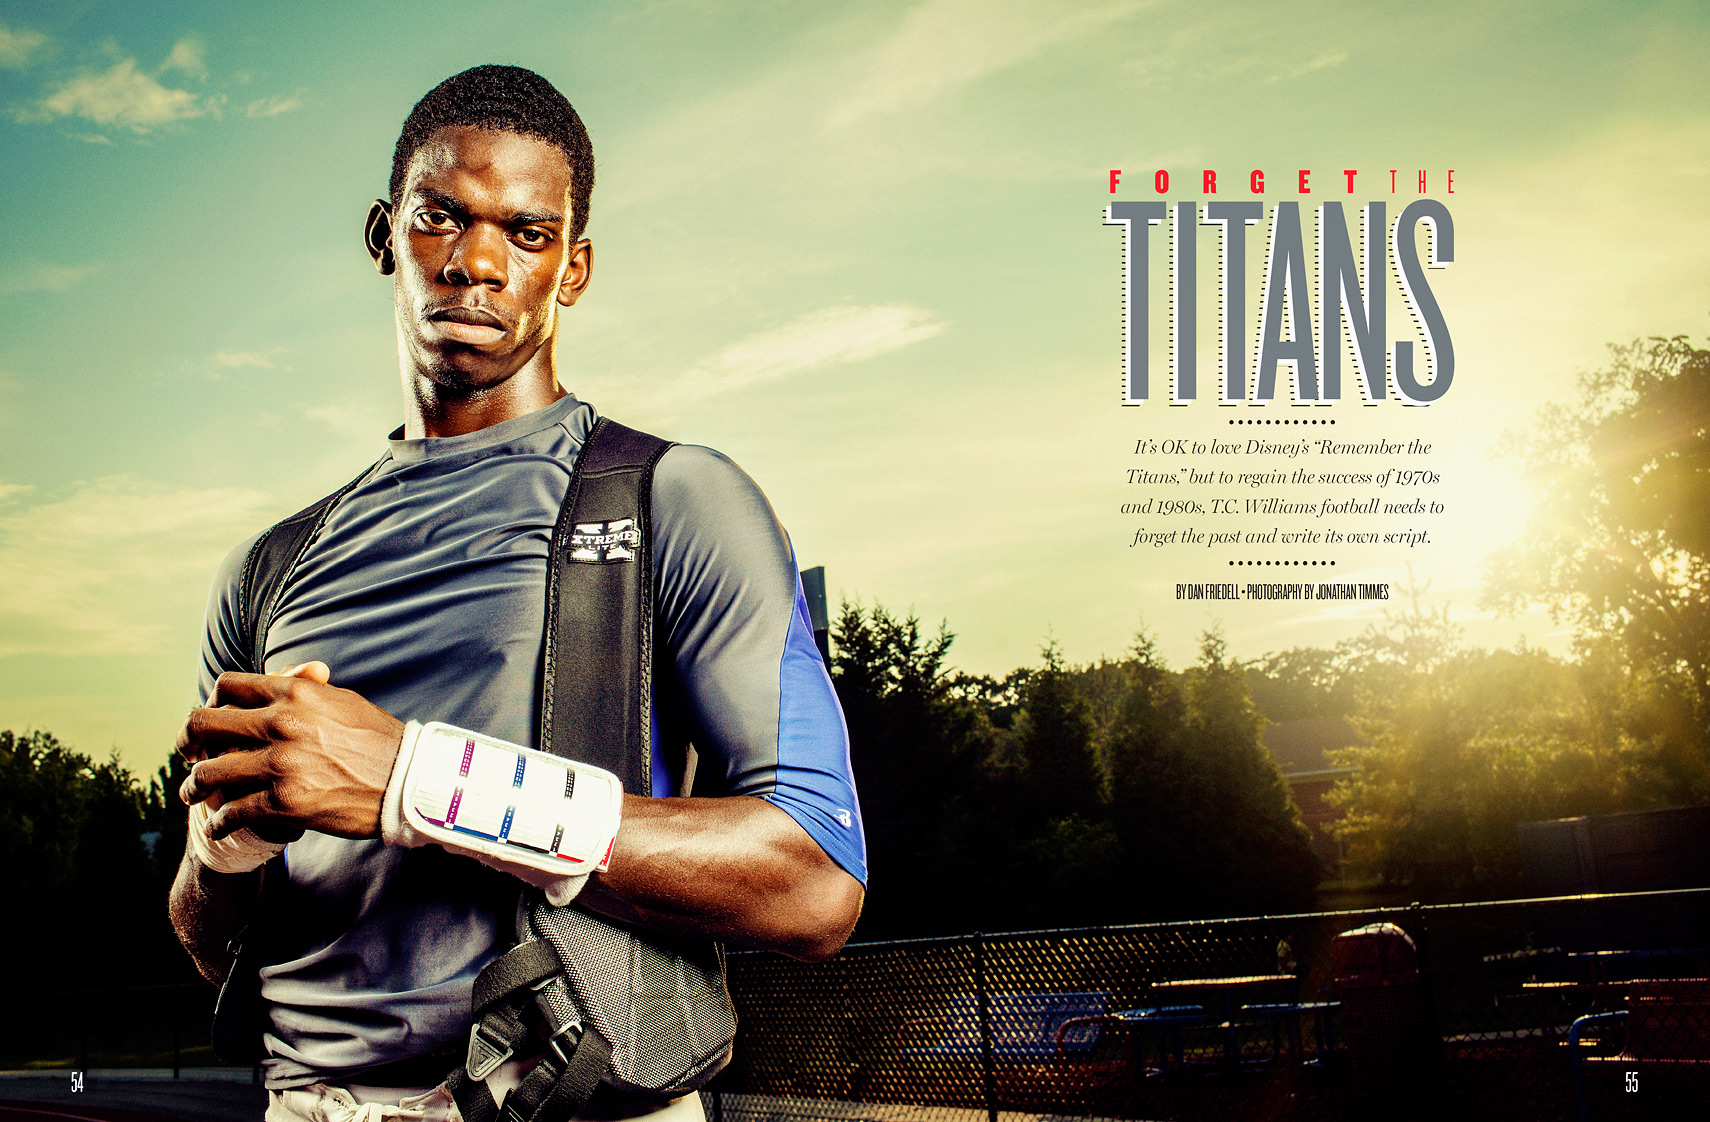 Darius Holland | TC Williams Football | Jonathan Timmes Photography